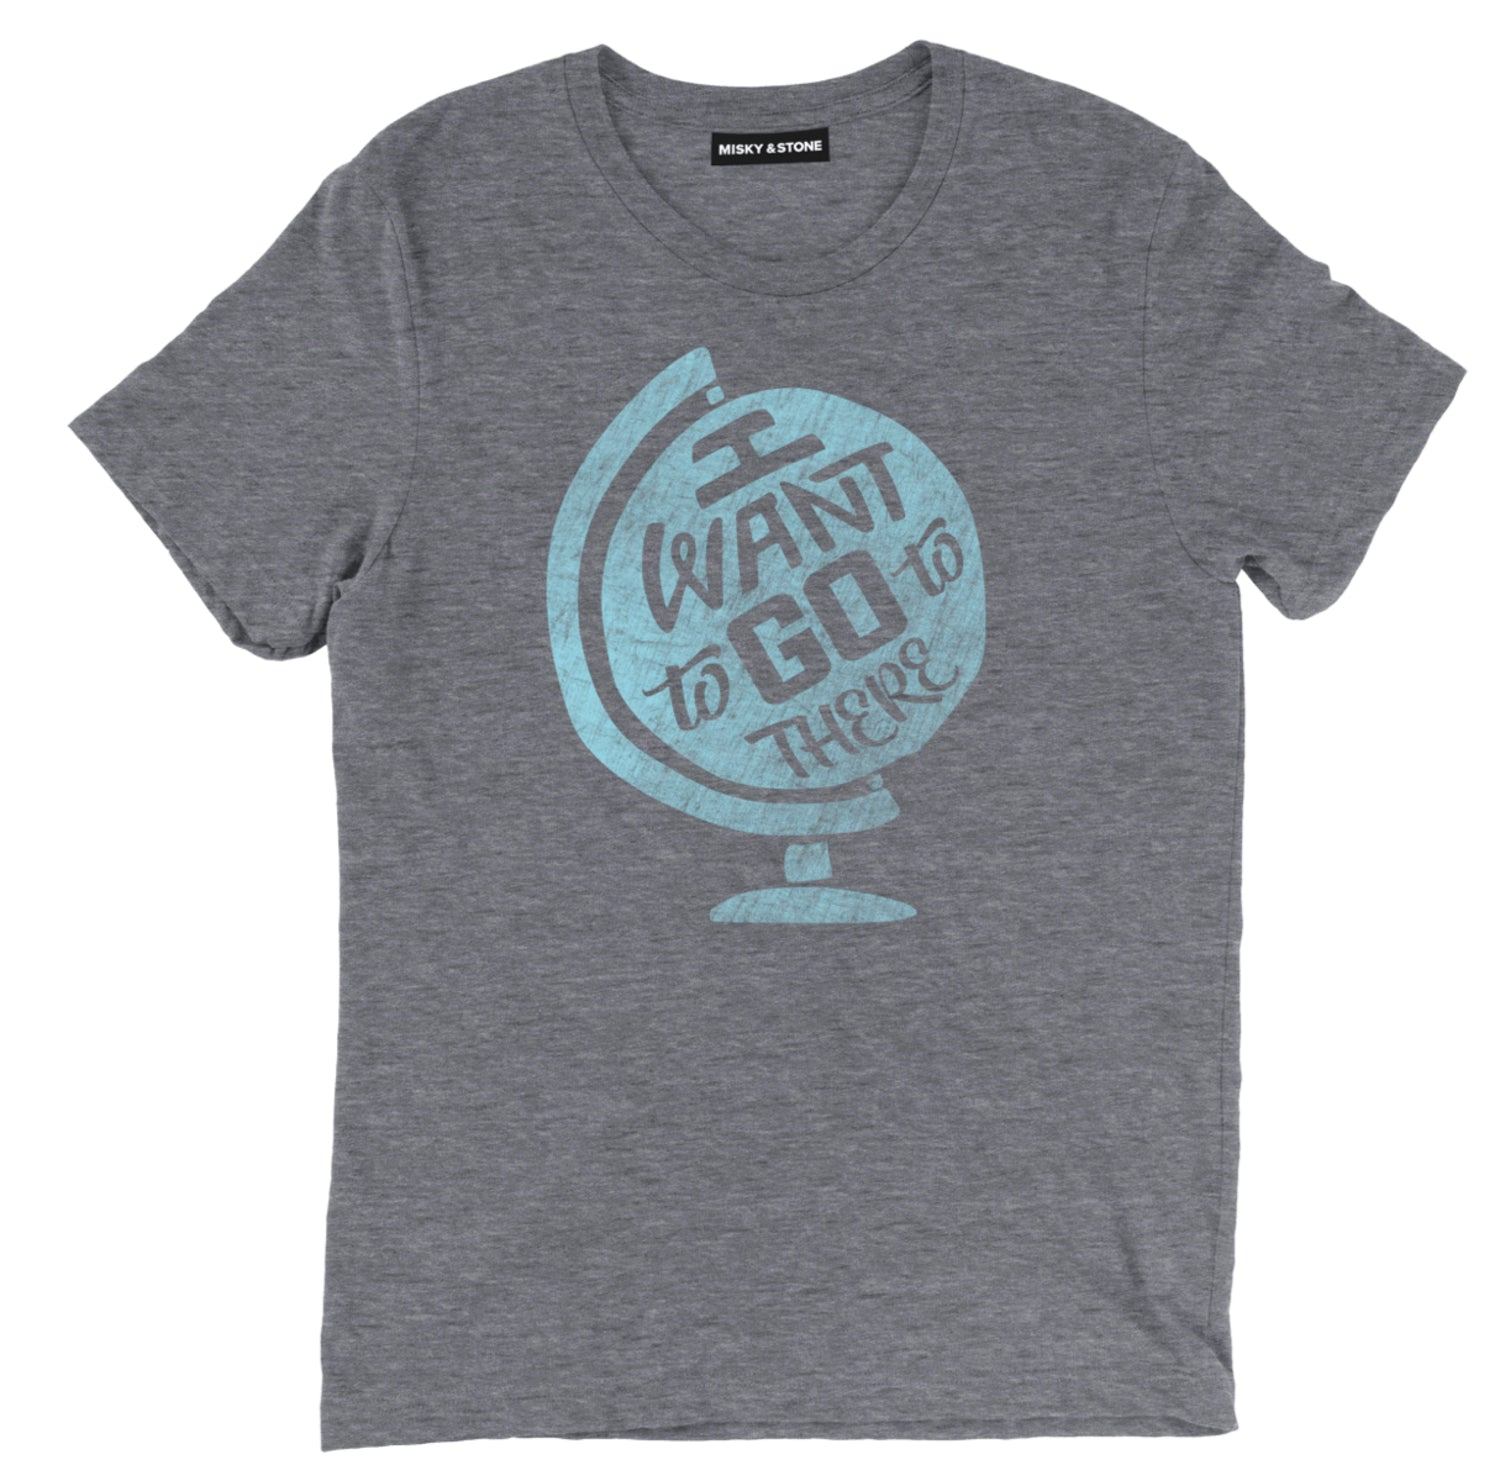 i want to go there shirt, travel quote shirt, spiritual t shirts, spiritual shirts, spiritual quote t shirts,